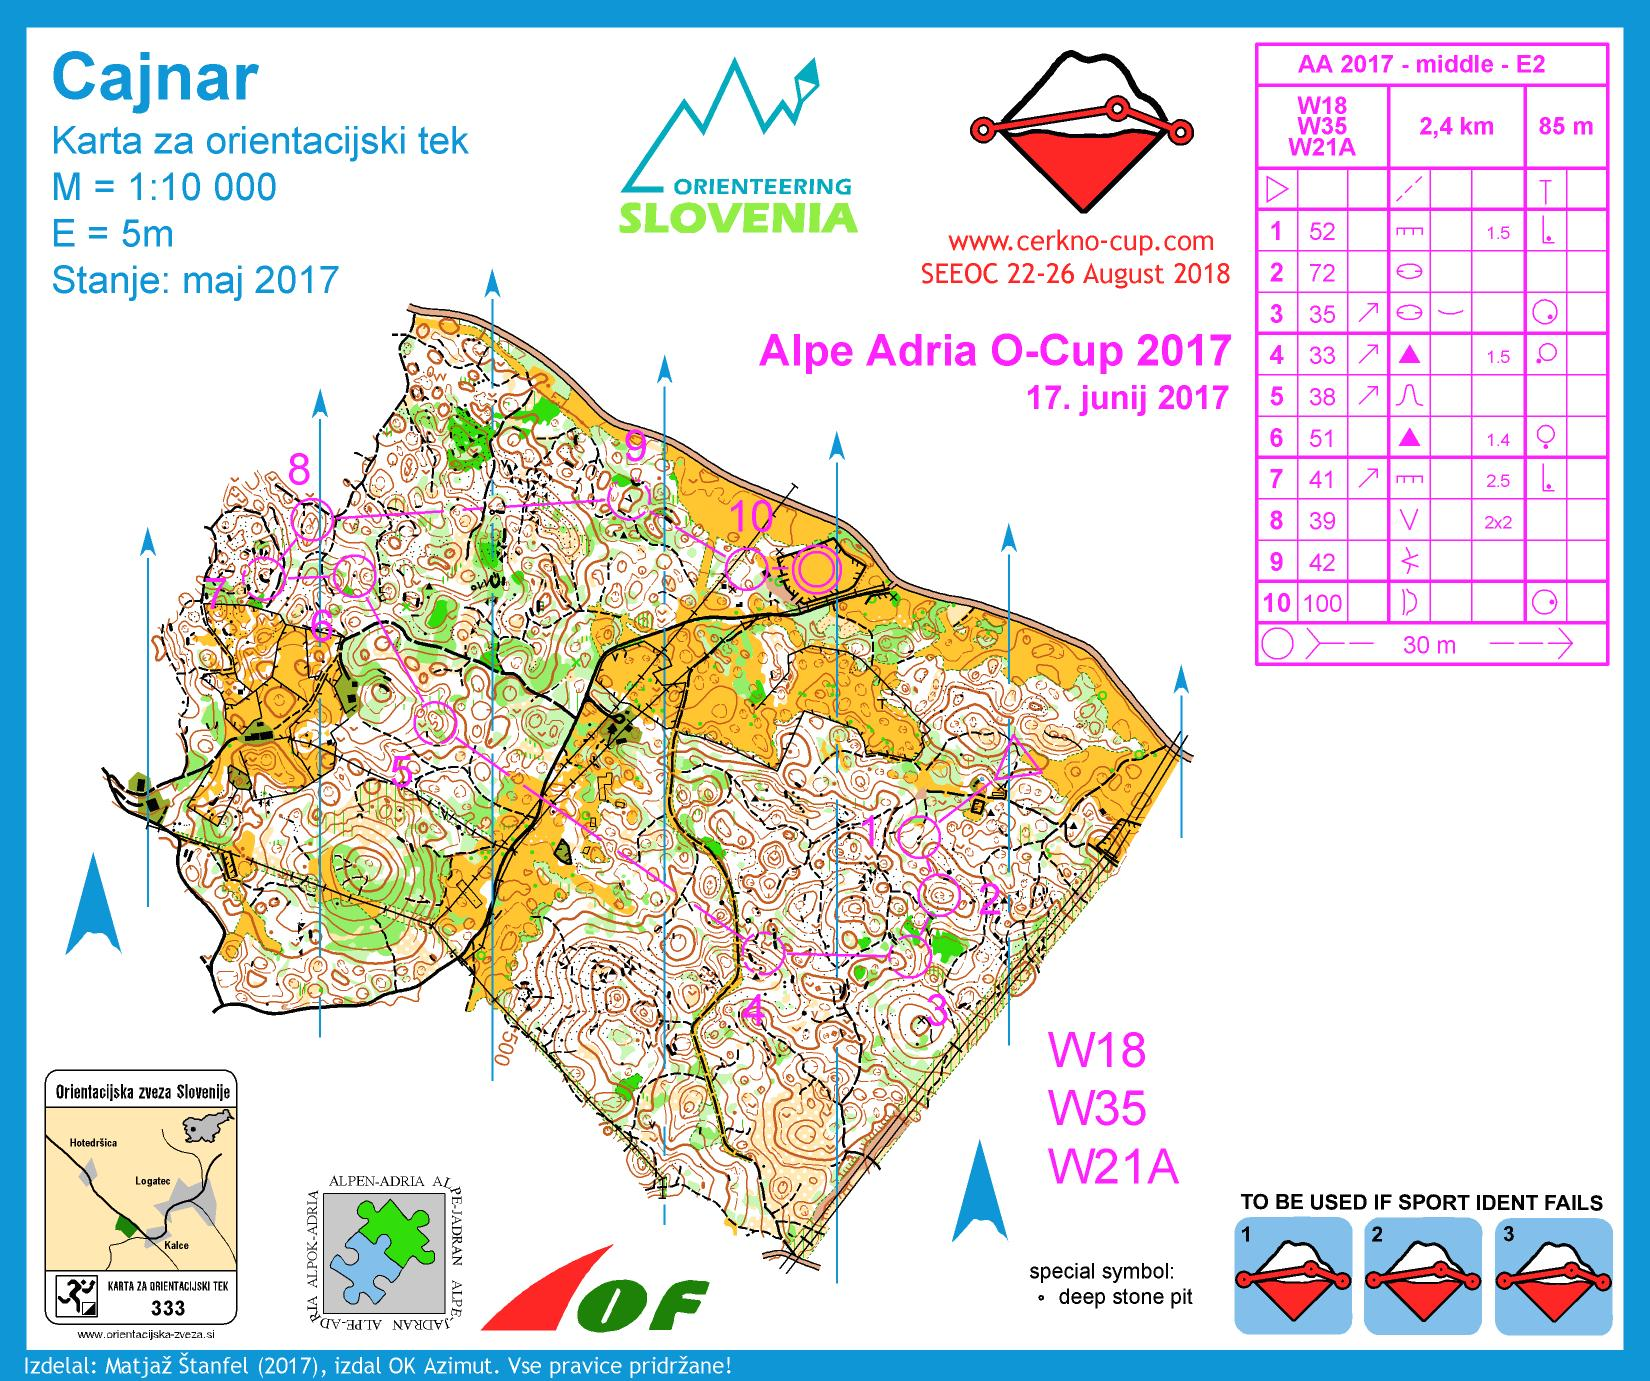 Alpe Adria Orienteering Cup - W18, W35, W21A - middle distance (17. 06. 2017)